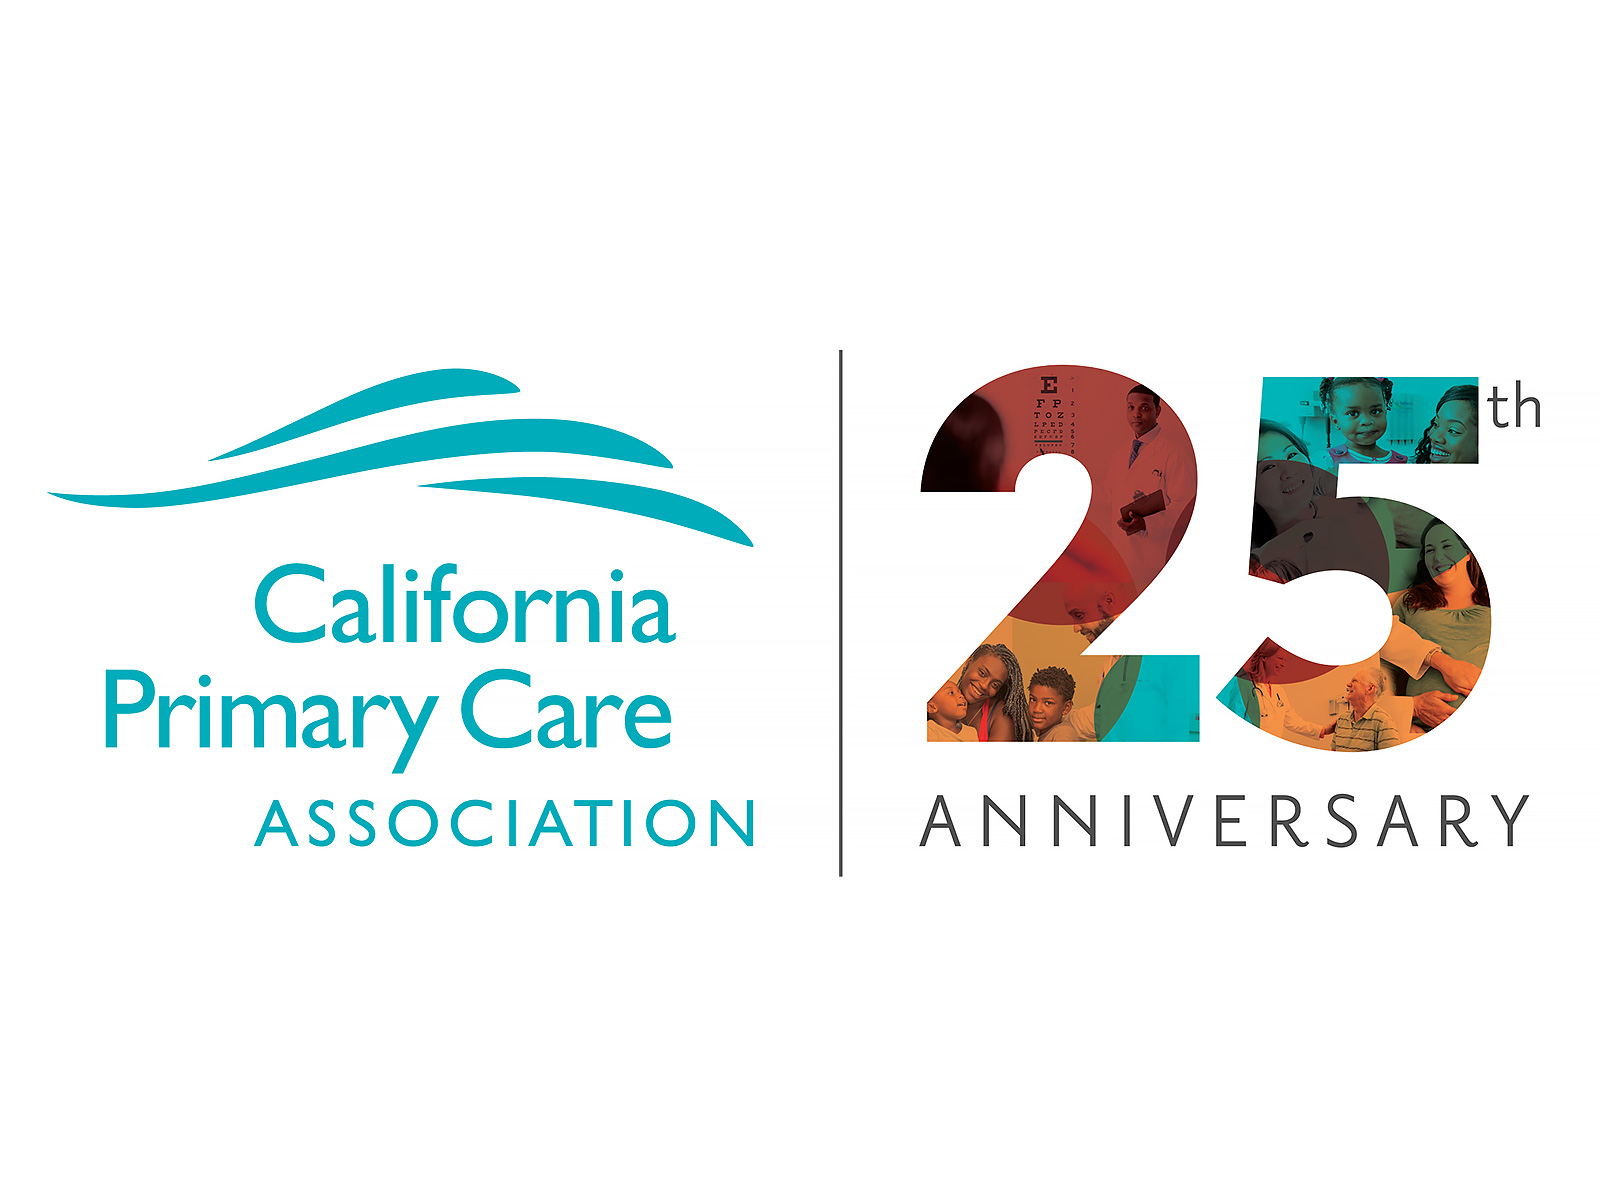 25+IMPACT. ACCESS. INNOVATION. VALUE. - This year CPCA is celebrating its 25th Anniversary! Over the past 25 years, CPCA has enjoyed immense success. Originally created by California health center leaders in 1994 with minimal staff and minor investment, CPCA has emerged as the statewide leader representing the interests of the largest health center network in the country. In the past quarter century CPCA has grown a lot, as have our members. Today, more than 1,330 community health centers serve the state of California, and provide comprehensive, high quality care to nearly 7 million people – that's 1 in every 6 Californians!